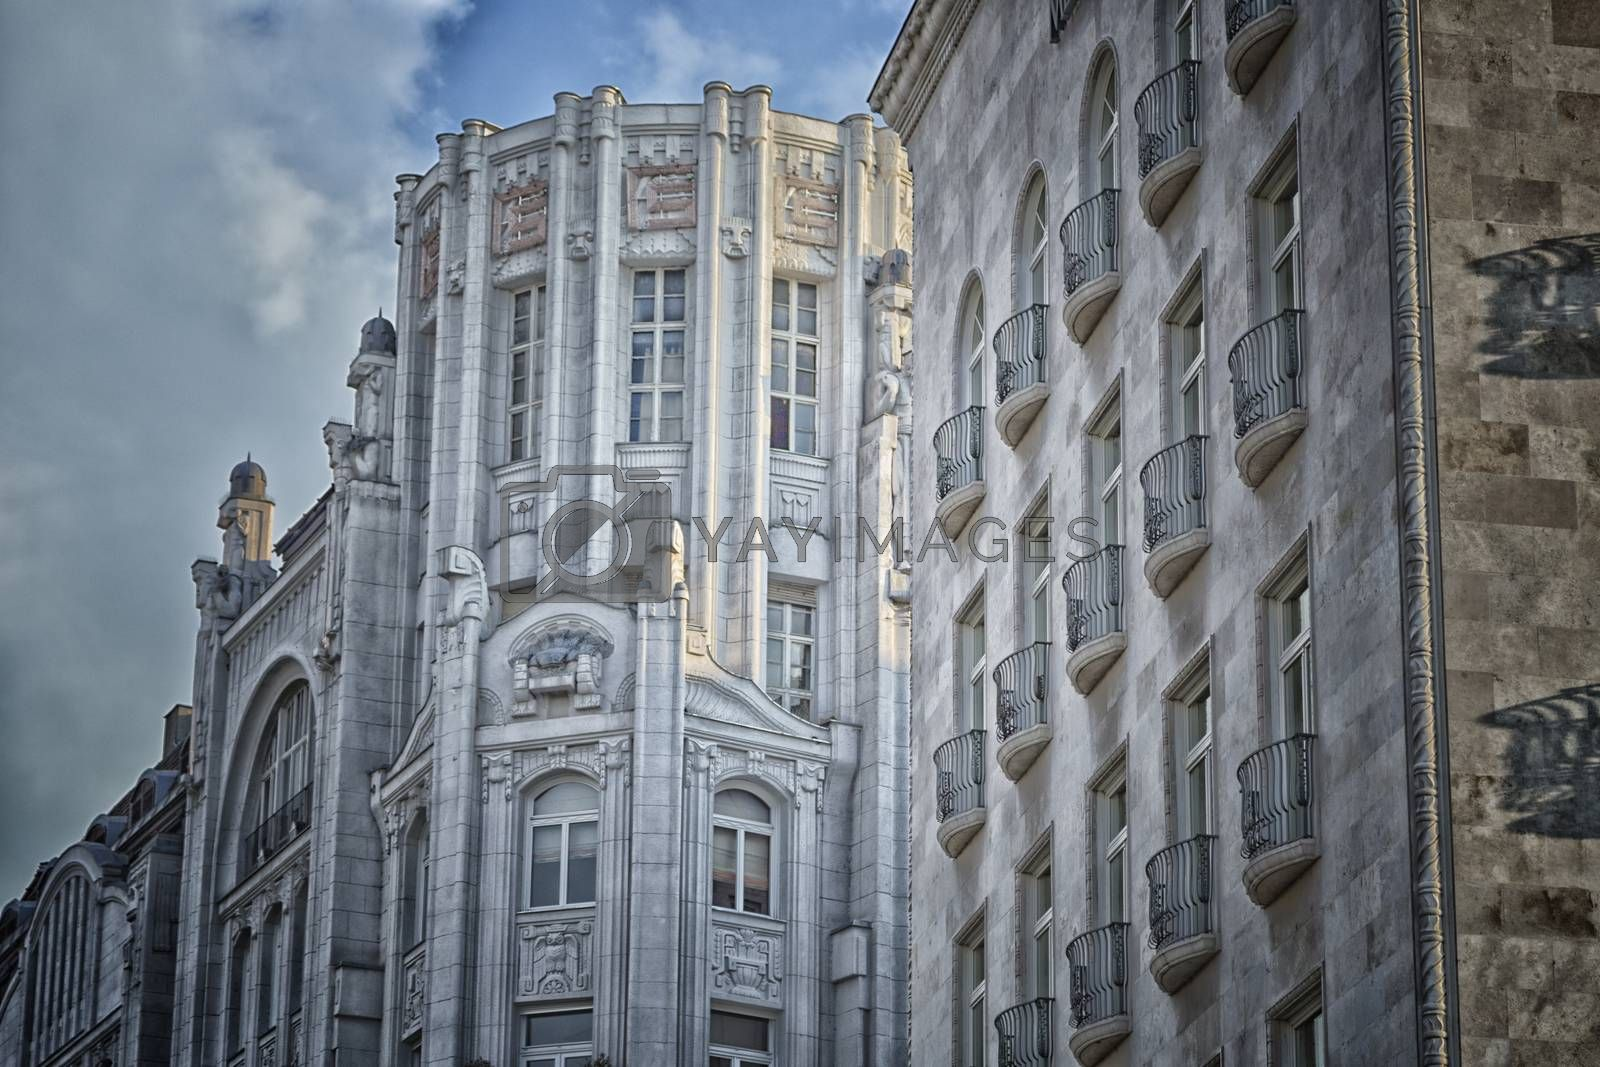 Palaces in Budapest by paocasa